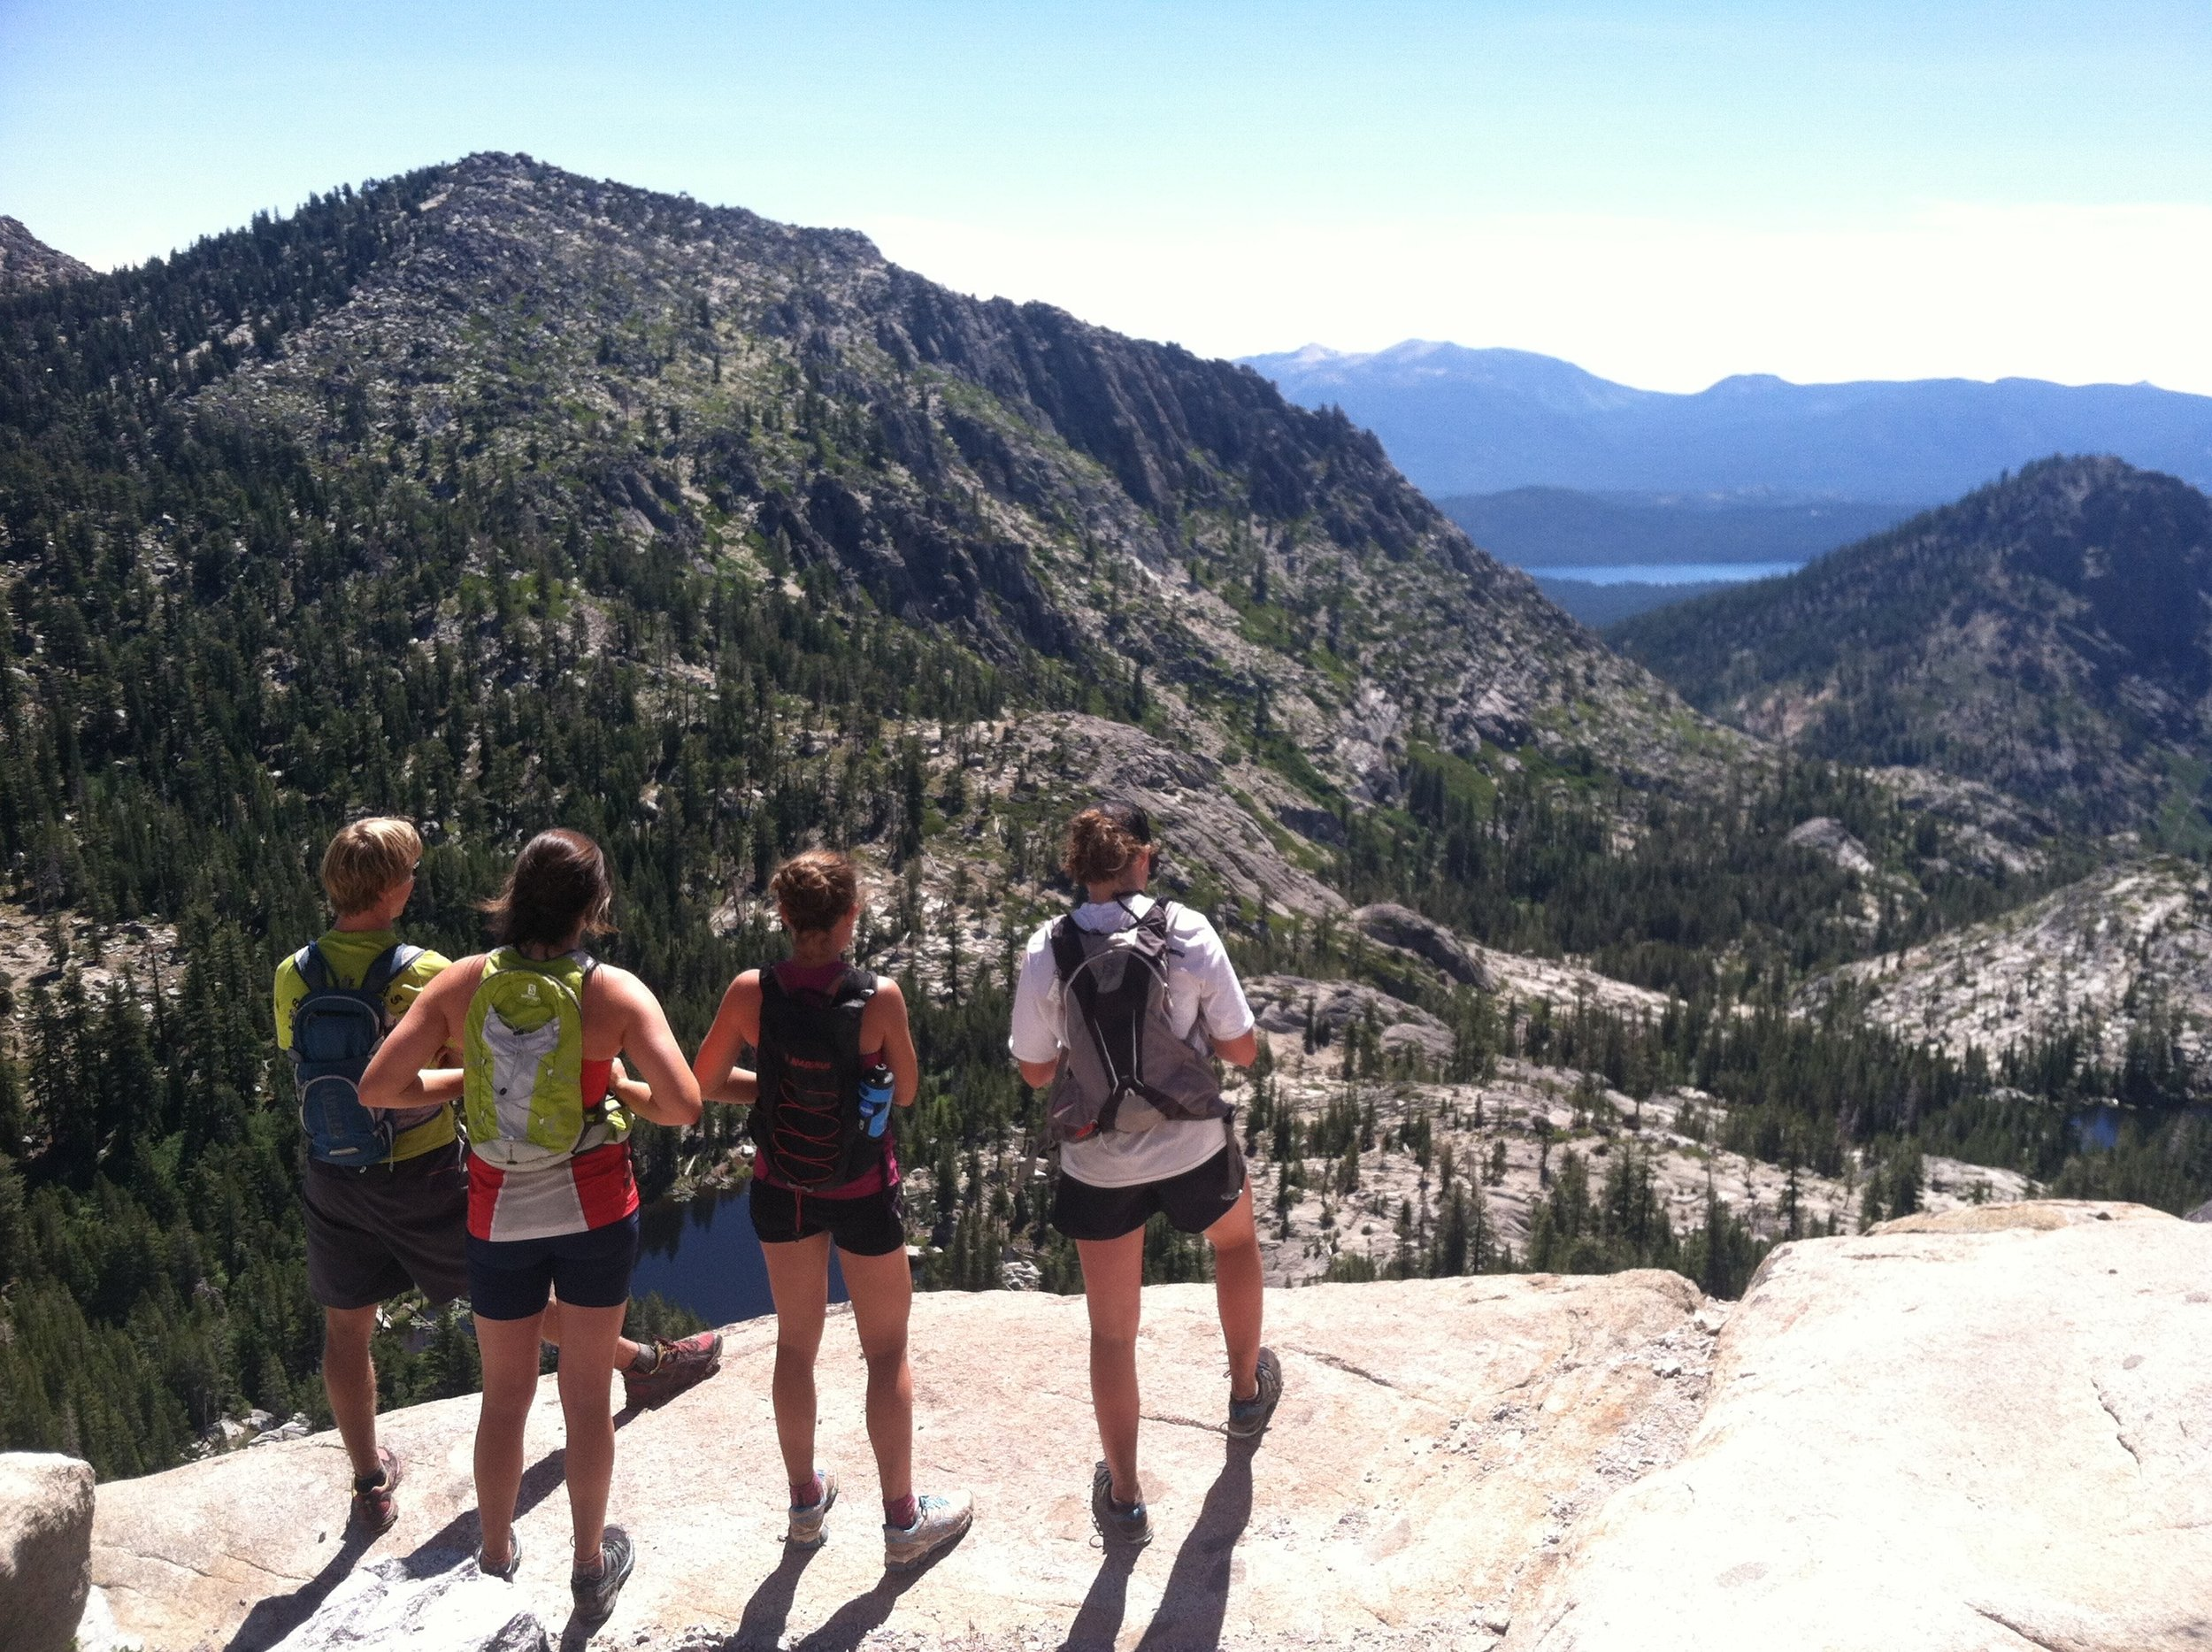 Enjoying the Sierra rocks (running in near Emerald Bay, summer 2014).